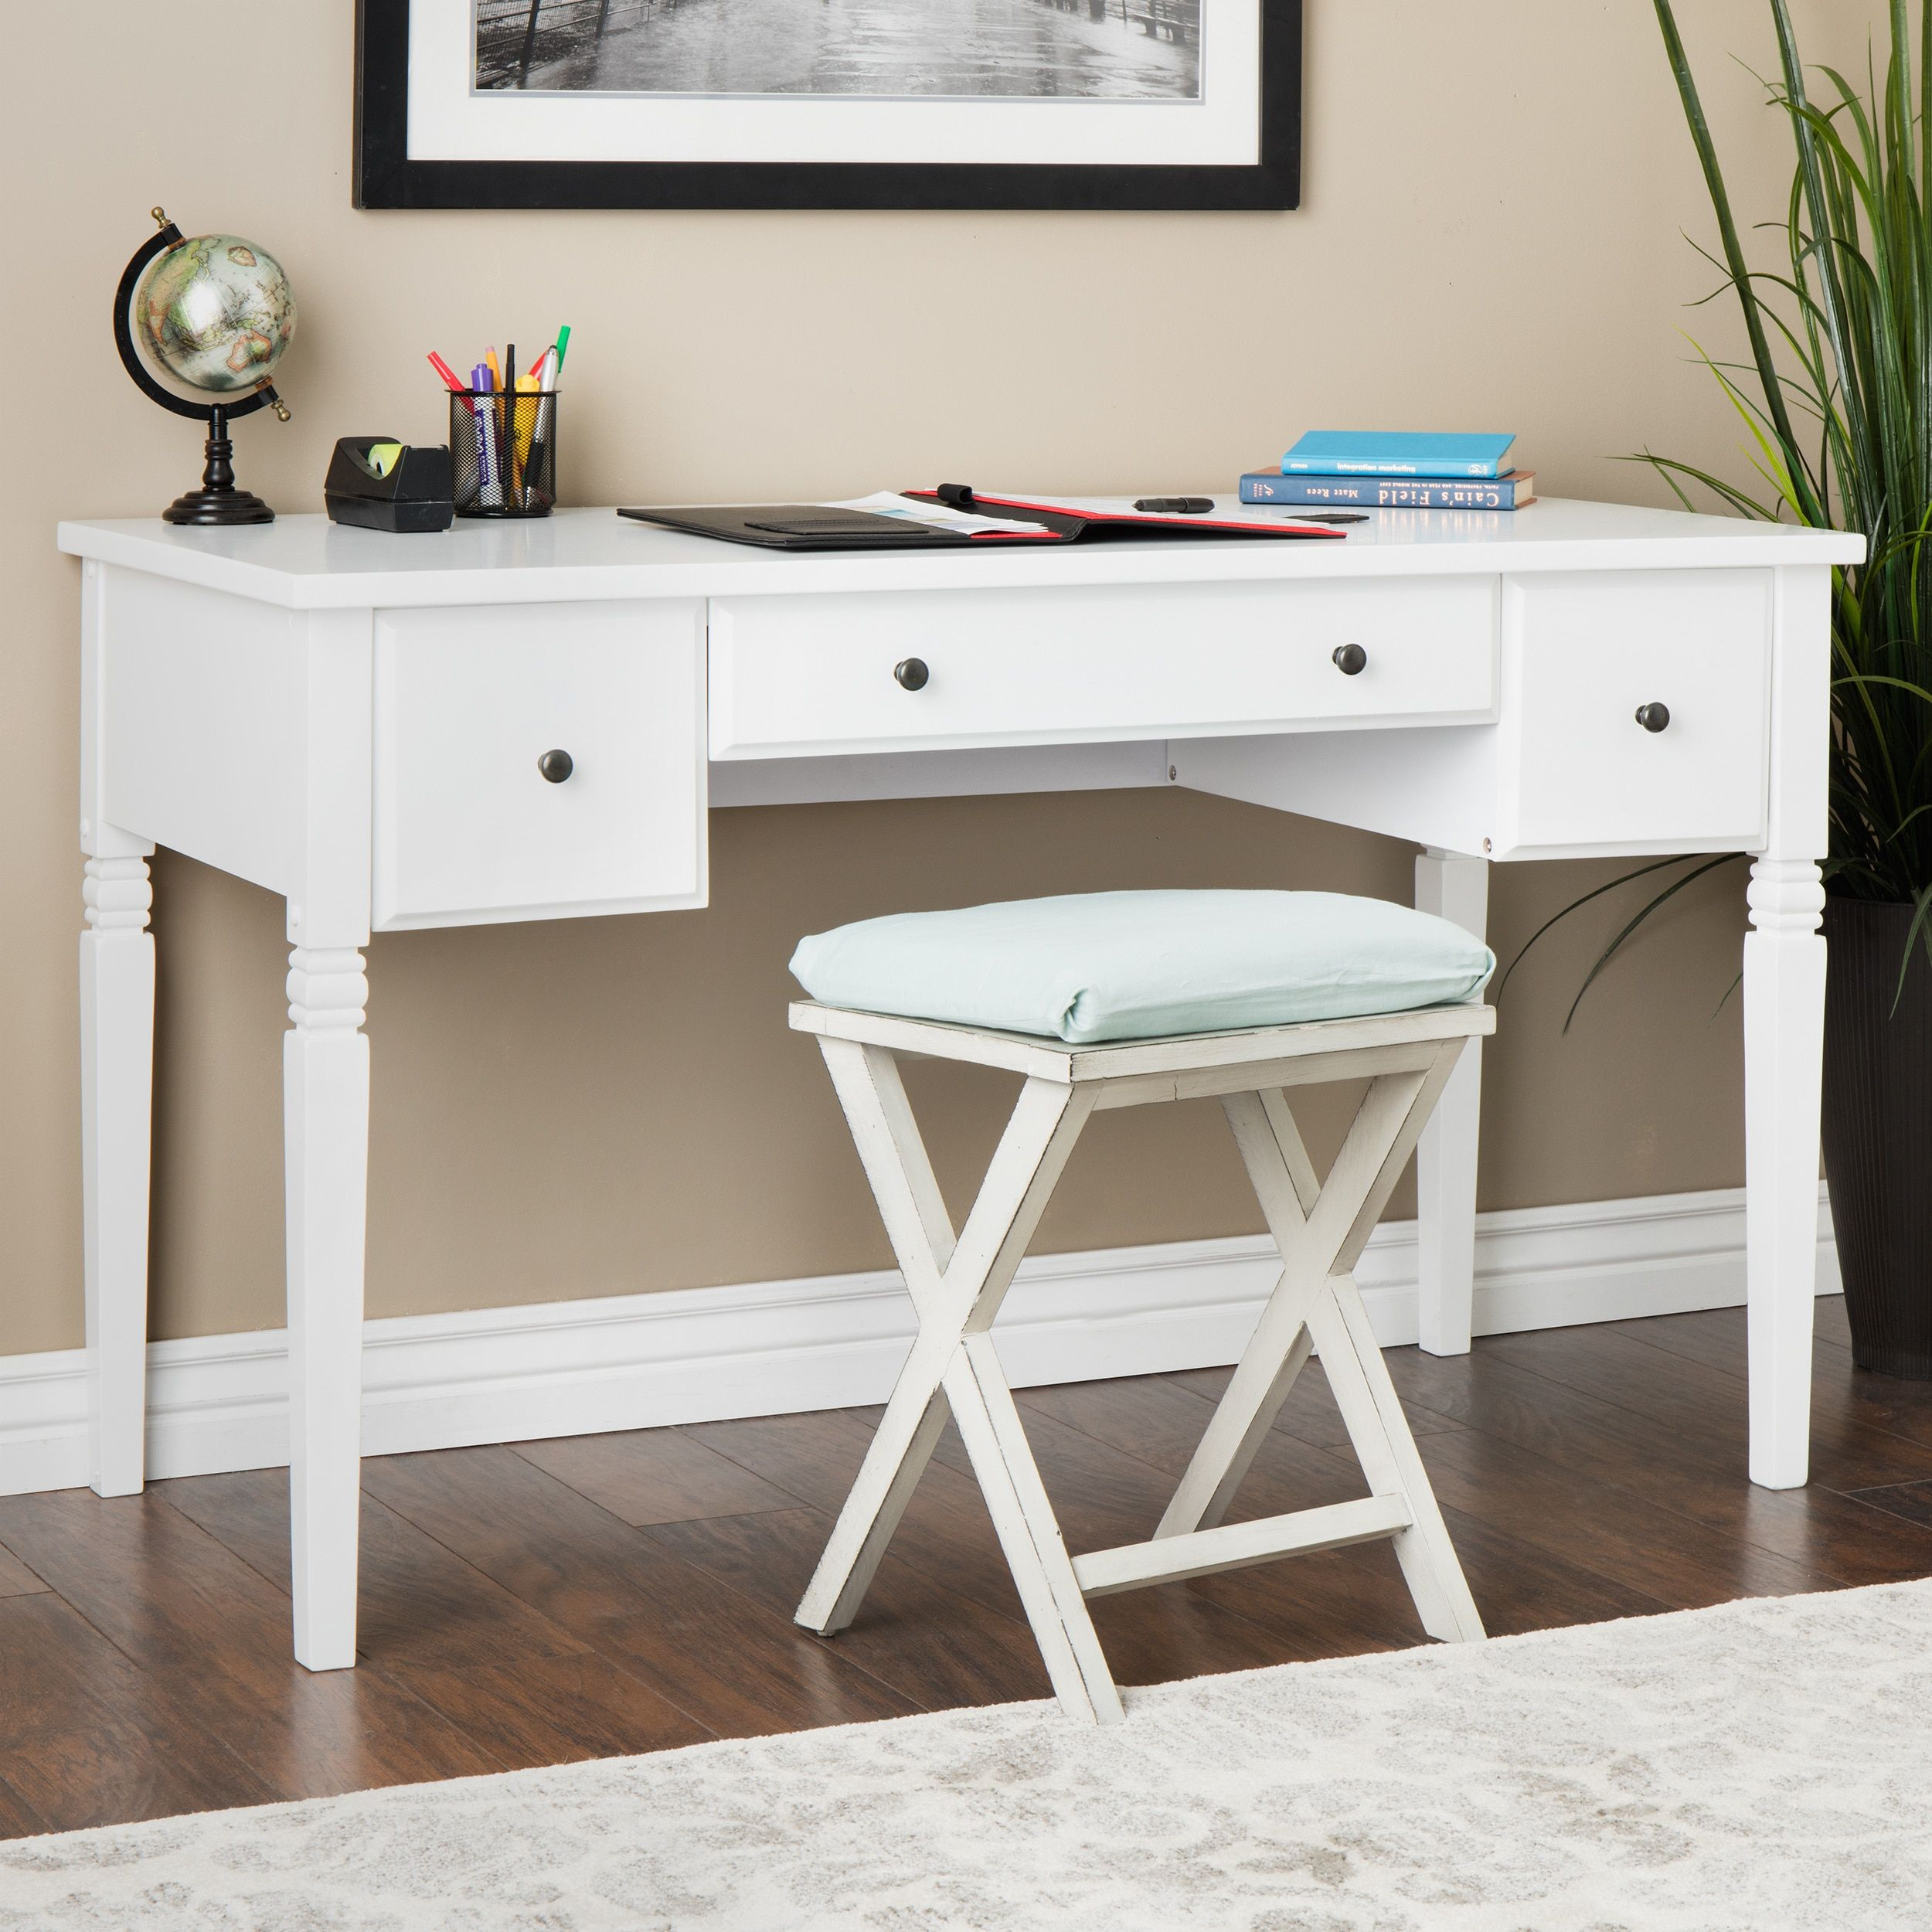 White Desk Home Goods: Free Shipping on orders over $45 at Overstock ...